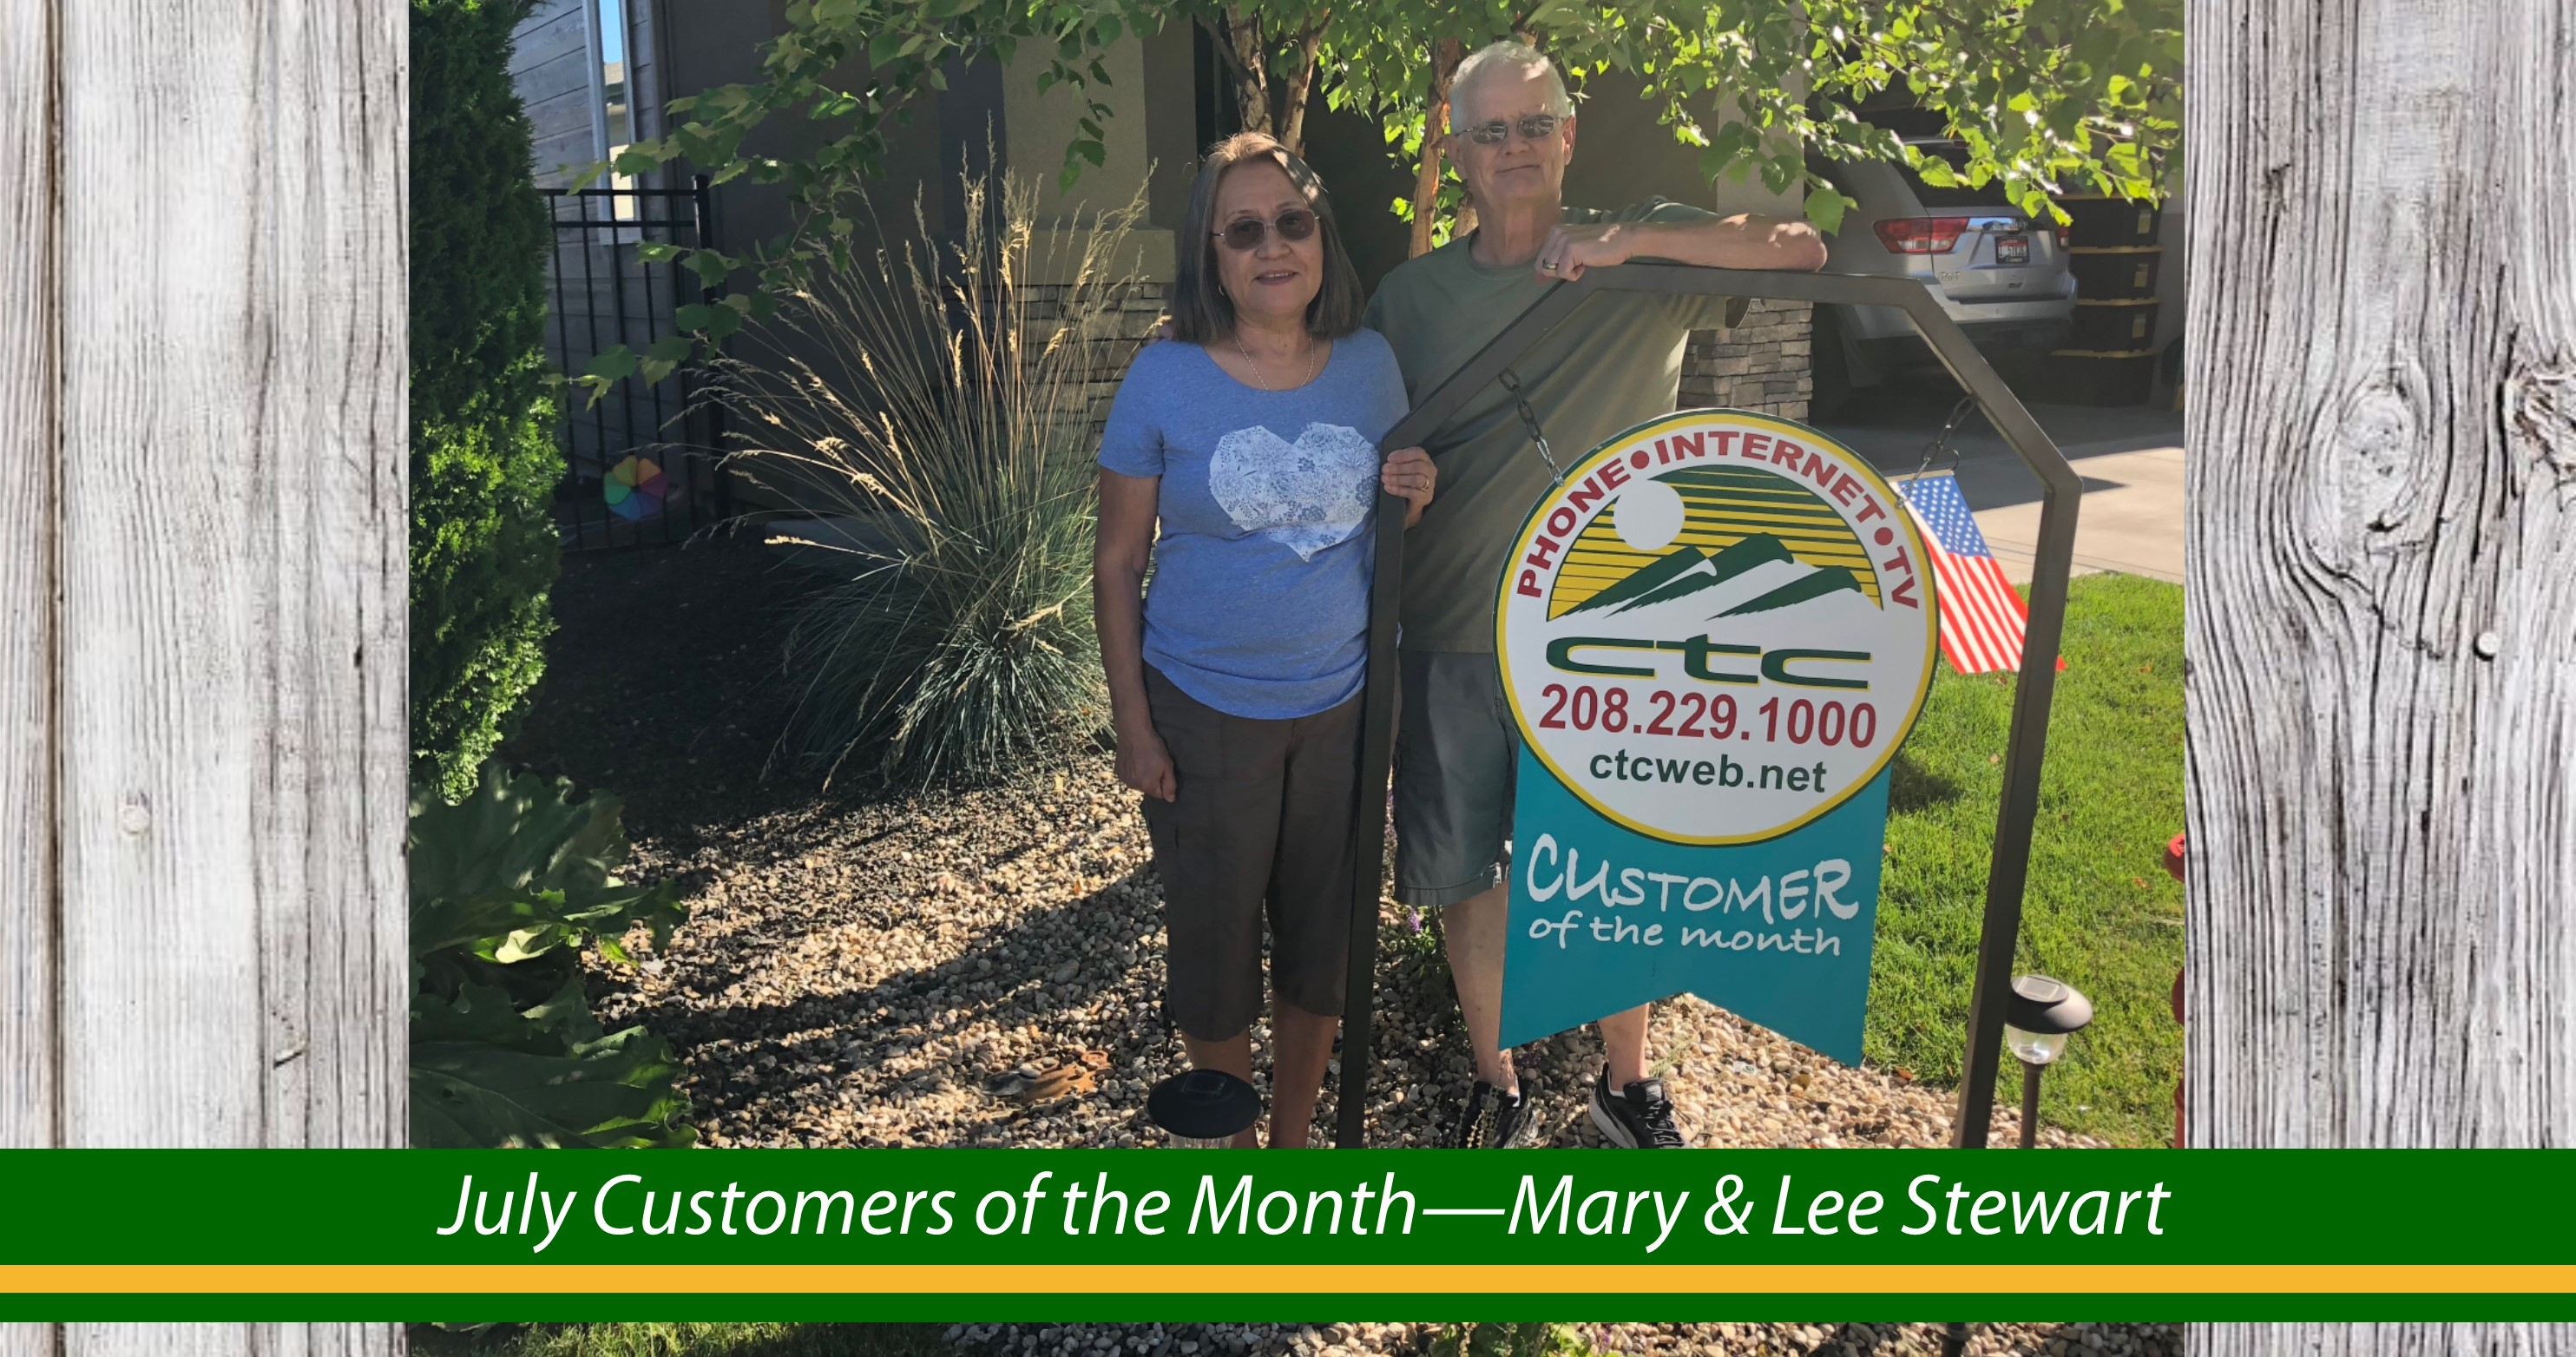 July Customers of the Month